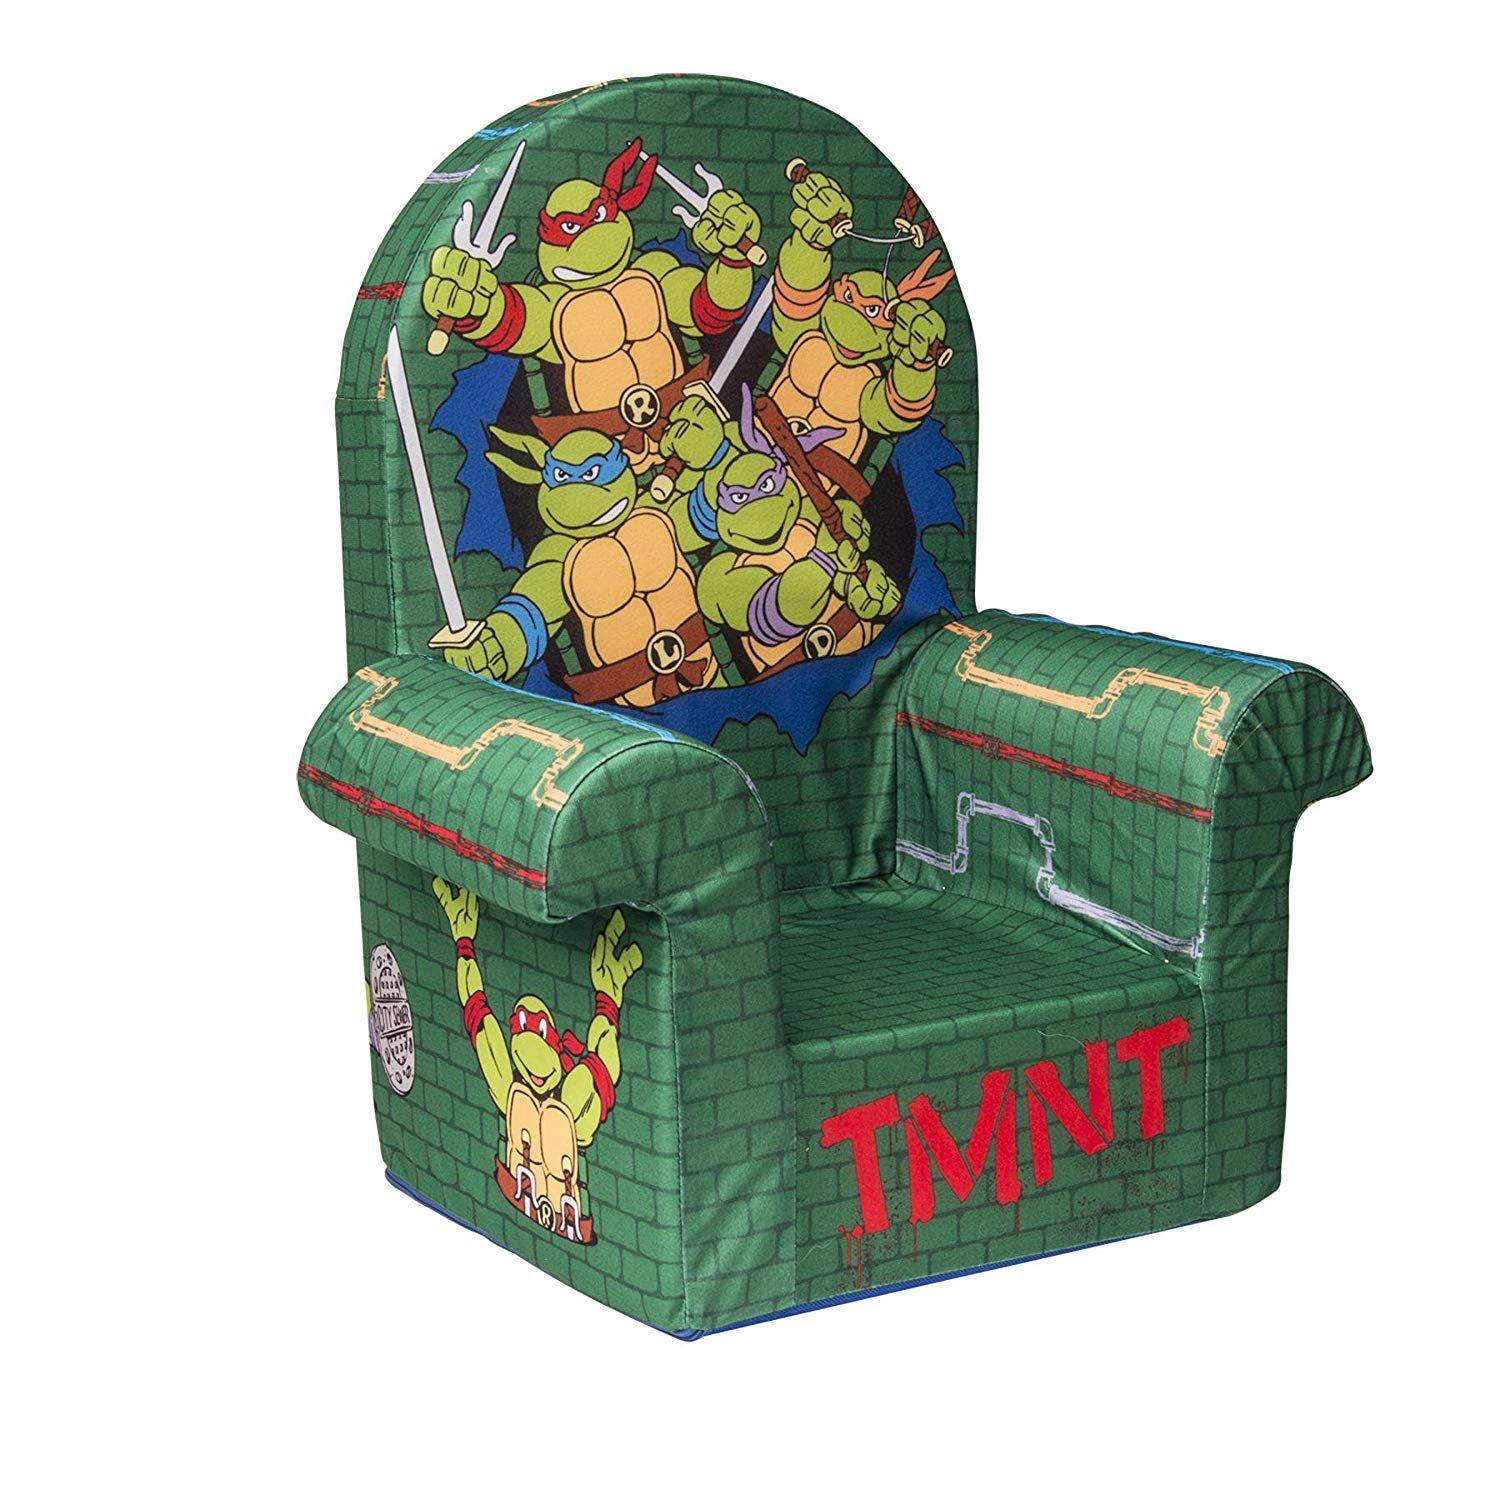 Marshmallow Furniture Teenage Mutant Ninja Turtles Retro